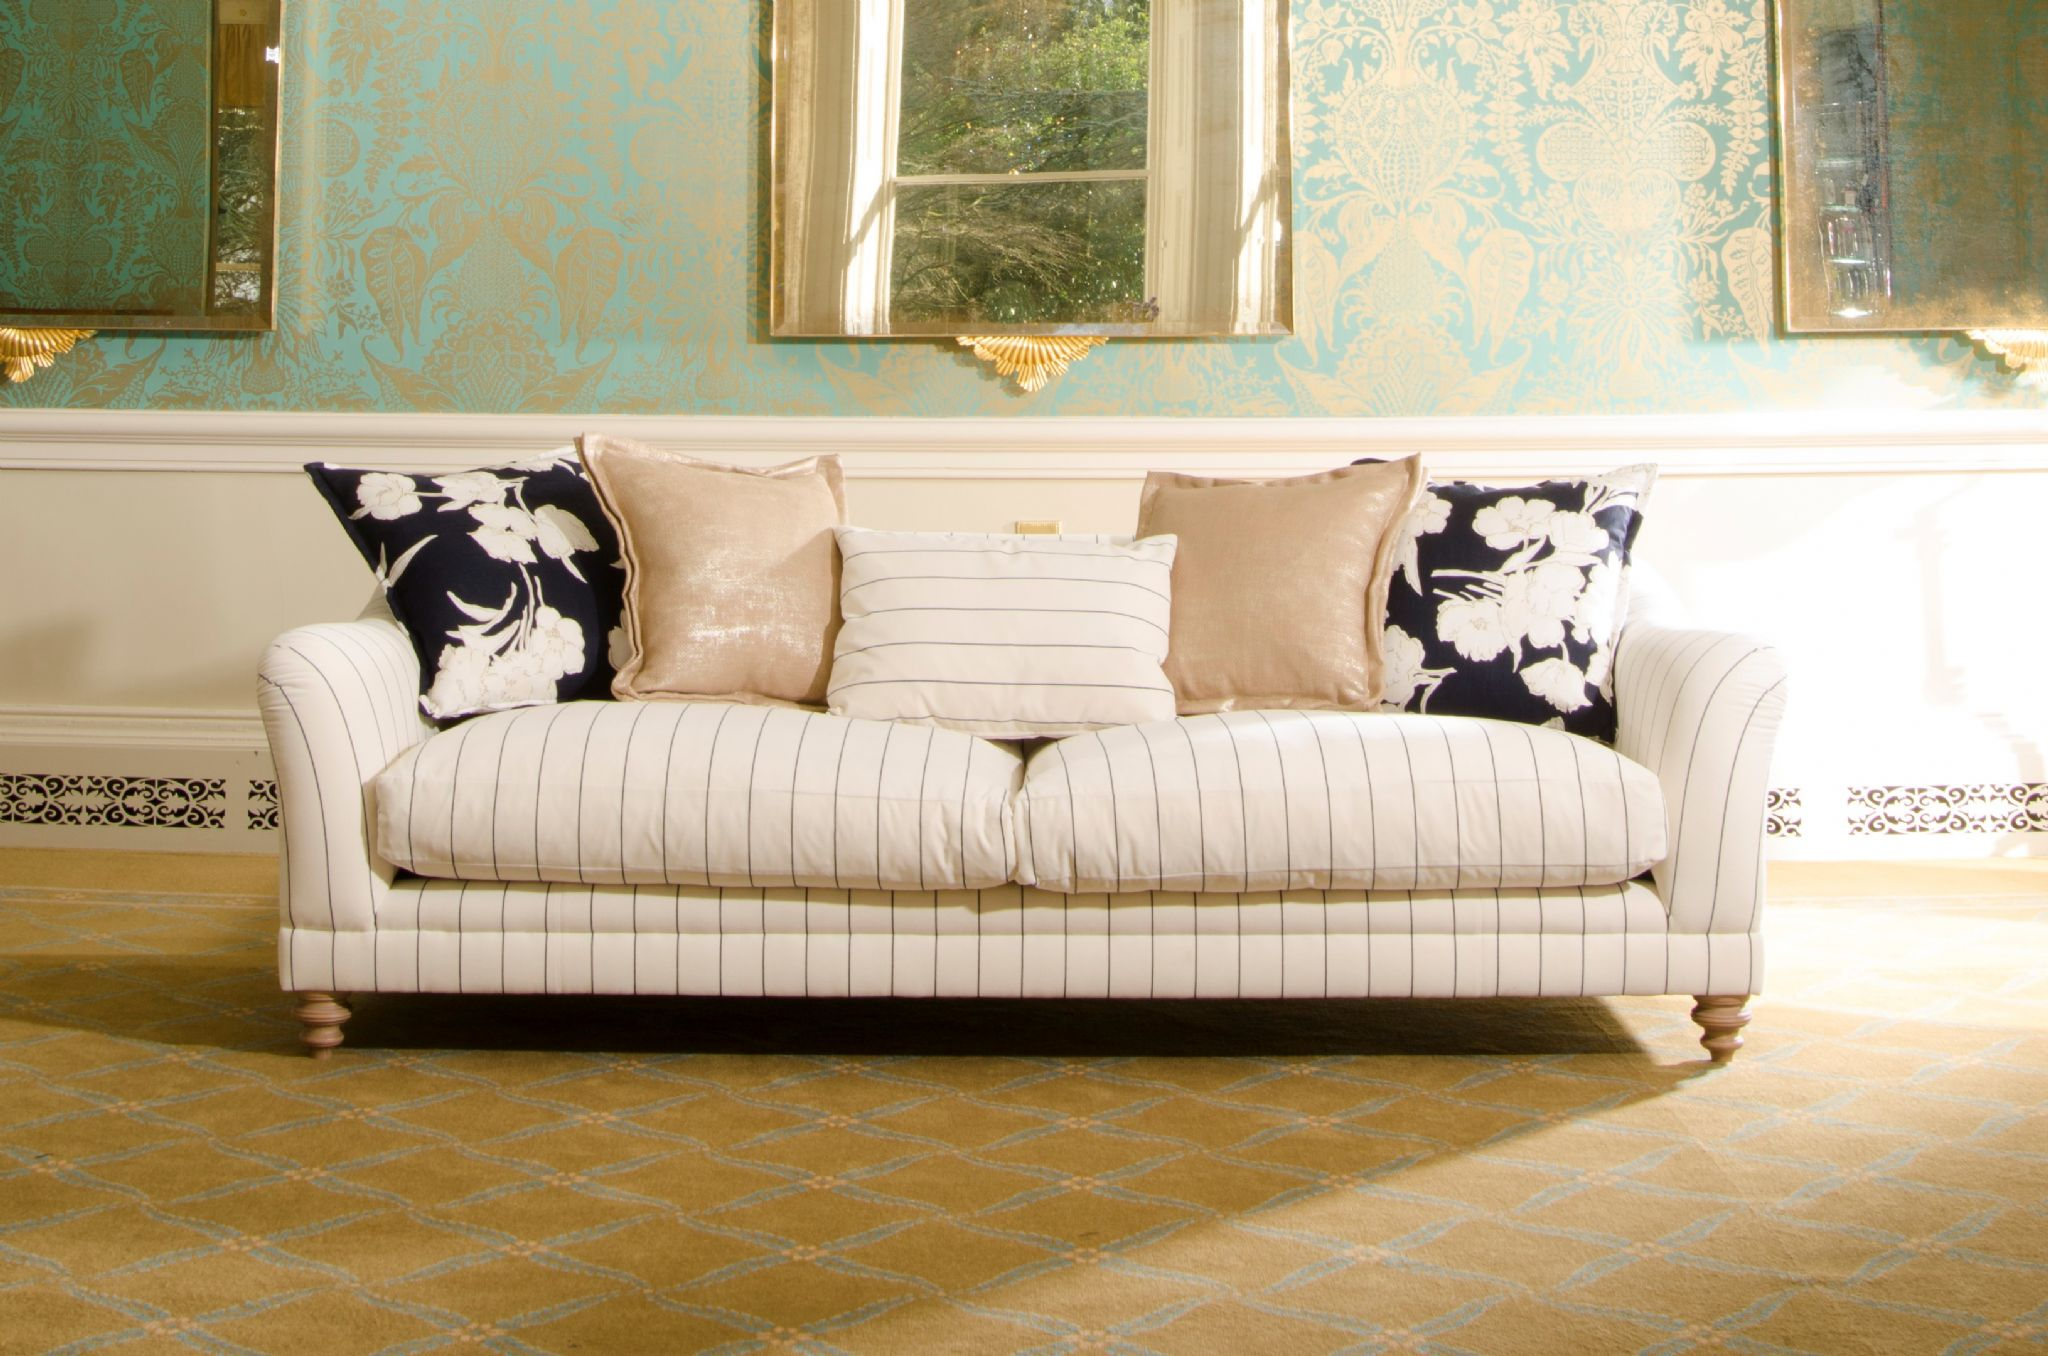 Sofas For Sale Grimsby Tetrad Gatsby Midi Sofa In Ralph Lauren Signature Fabric